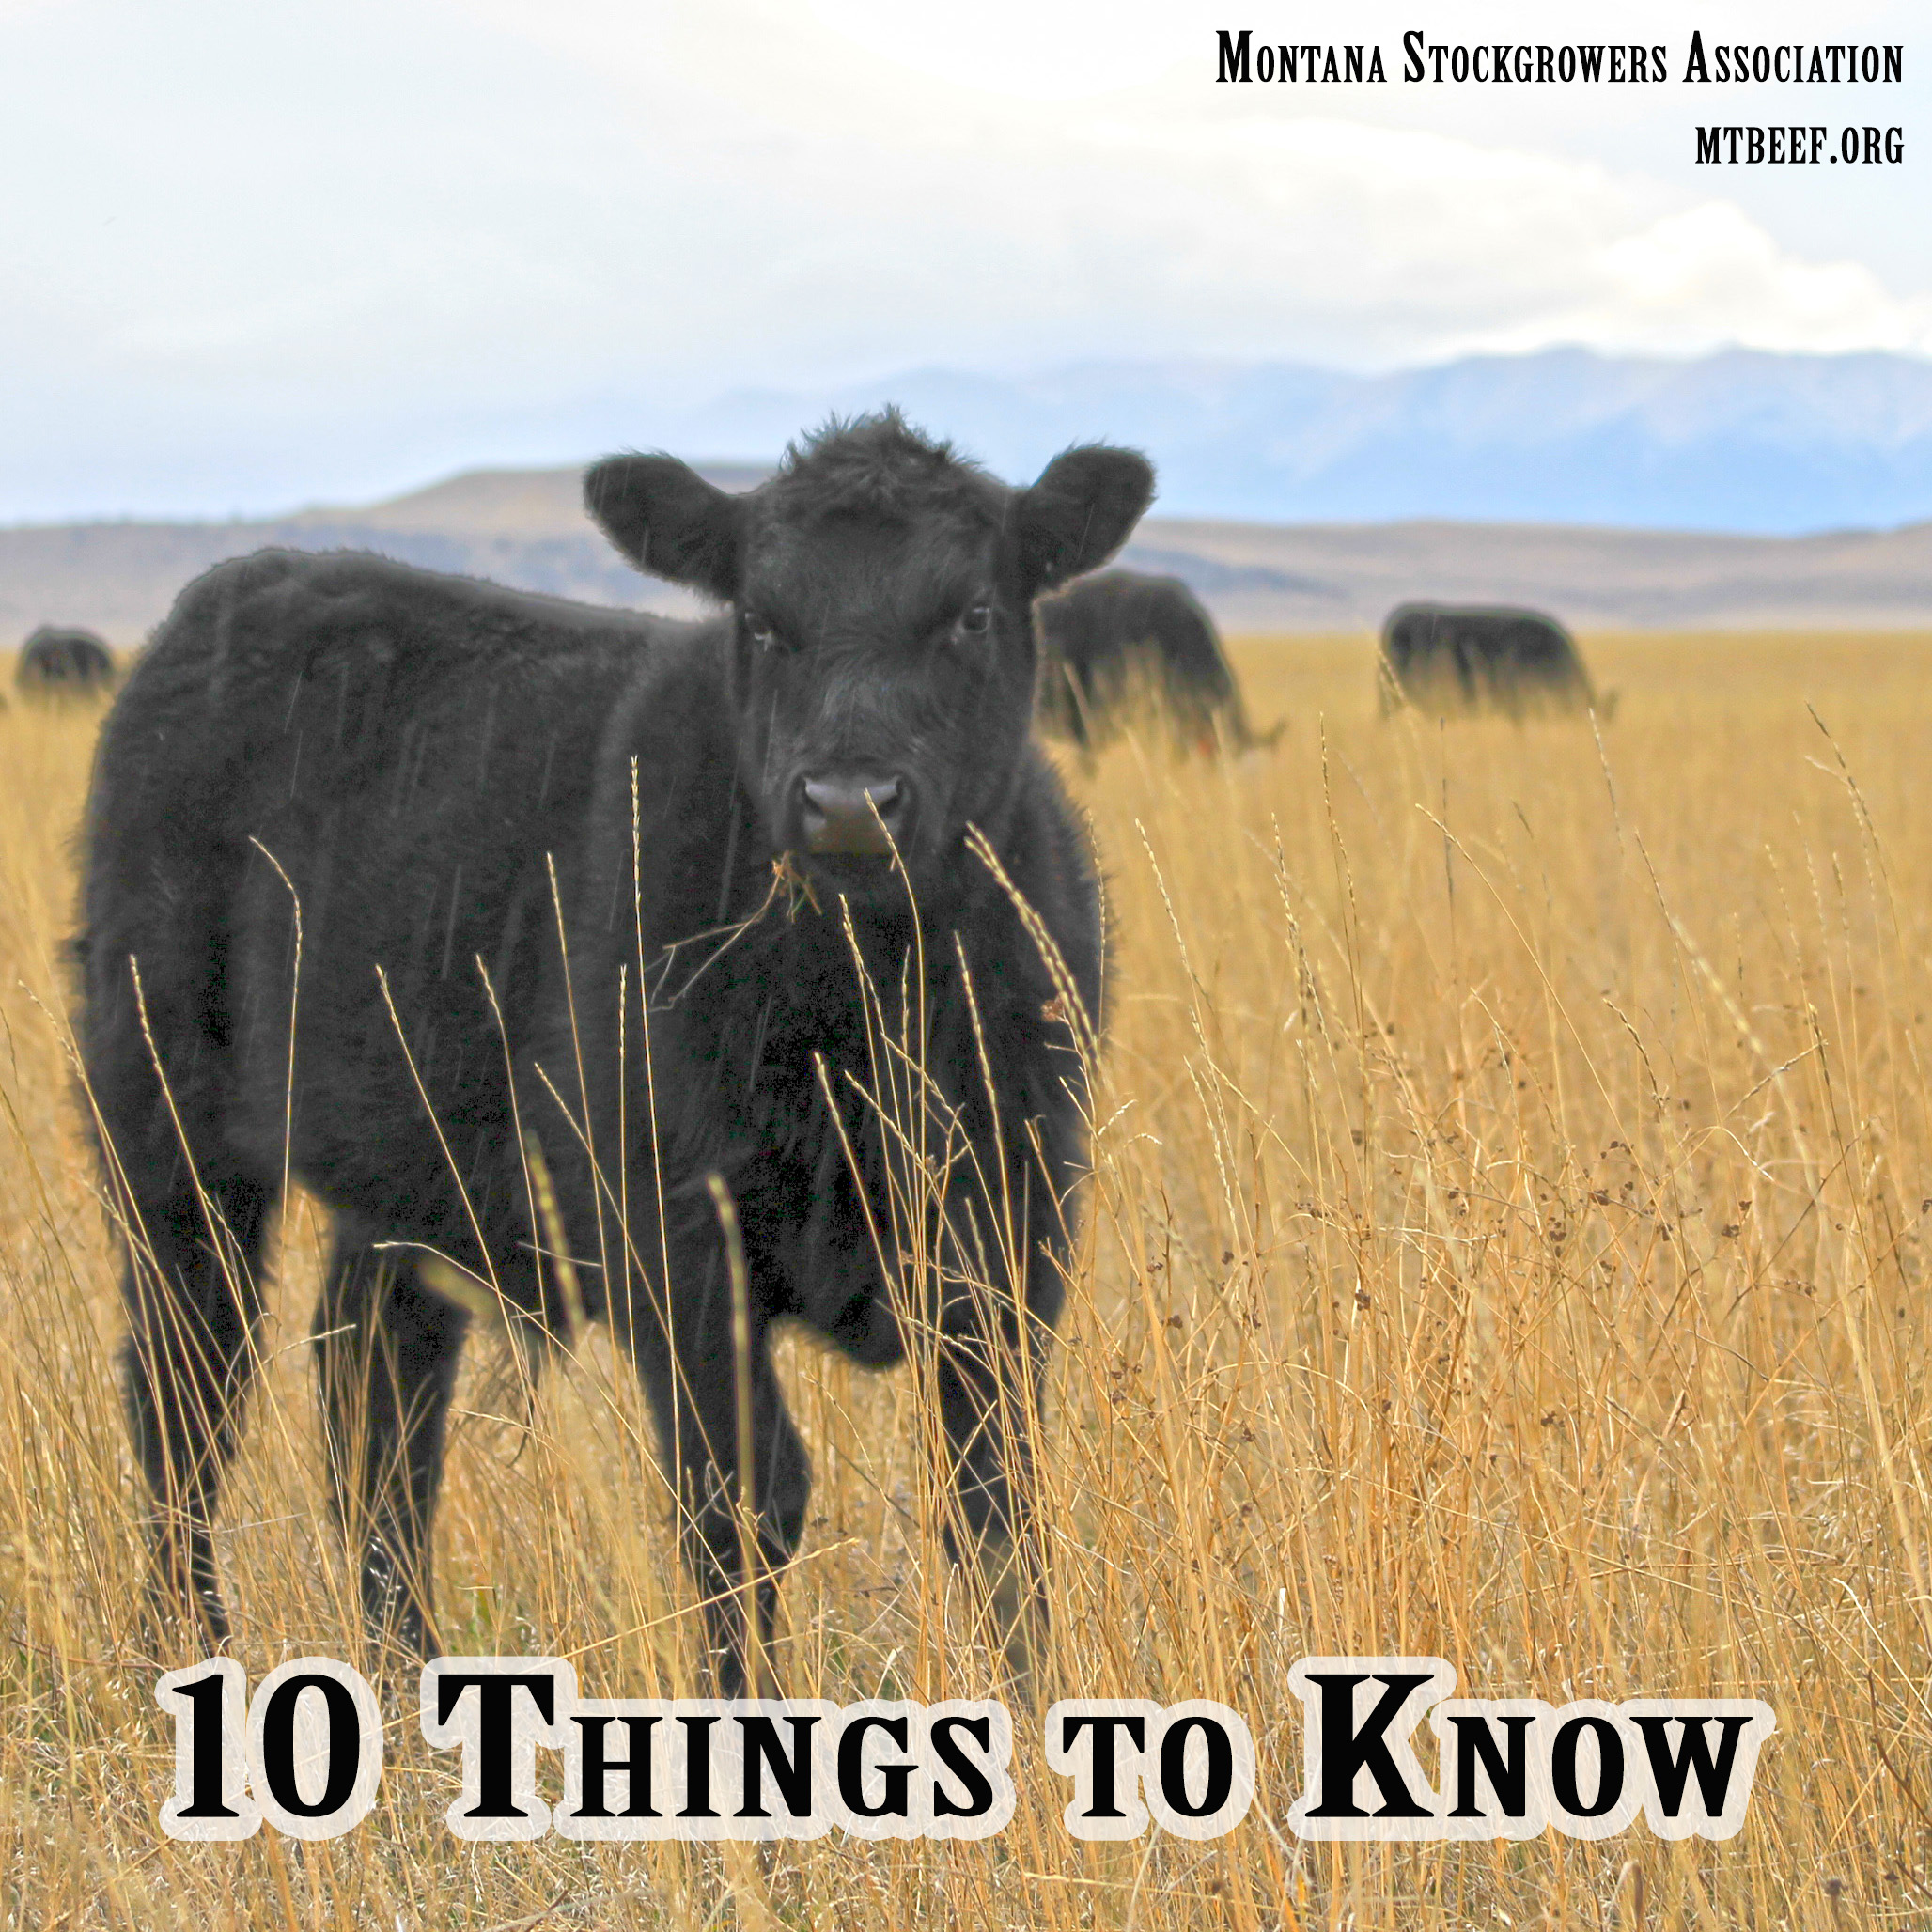 Click this image to view all posts in the 30-day blogging series, 10 Things to Know About Cattle